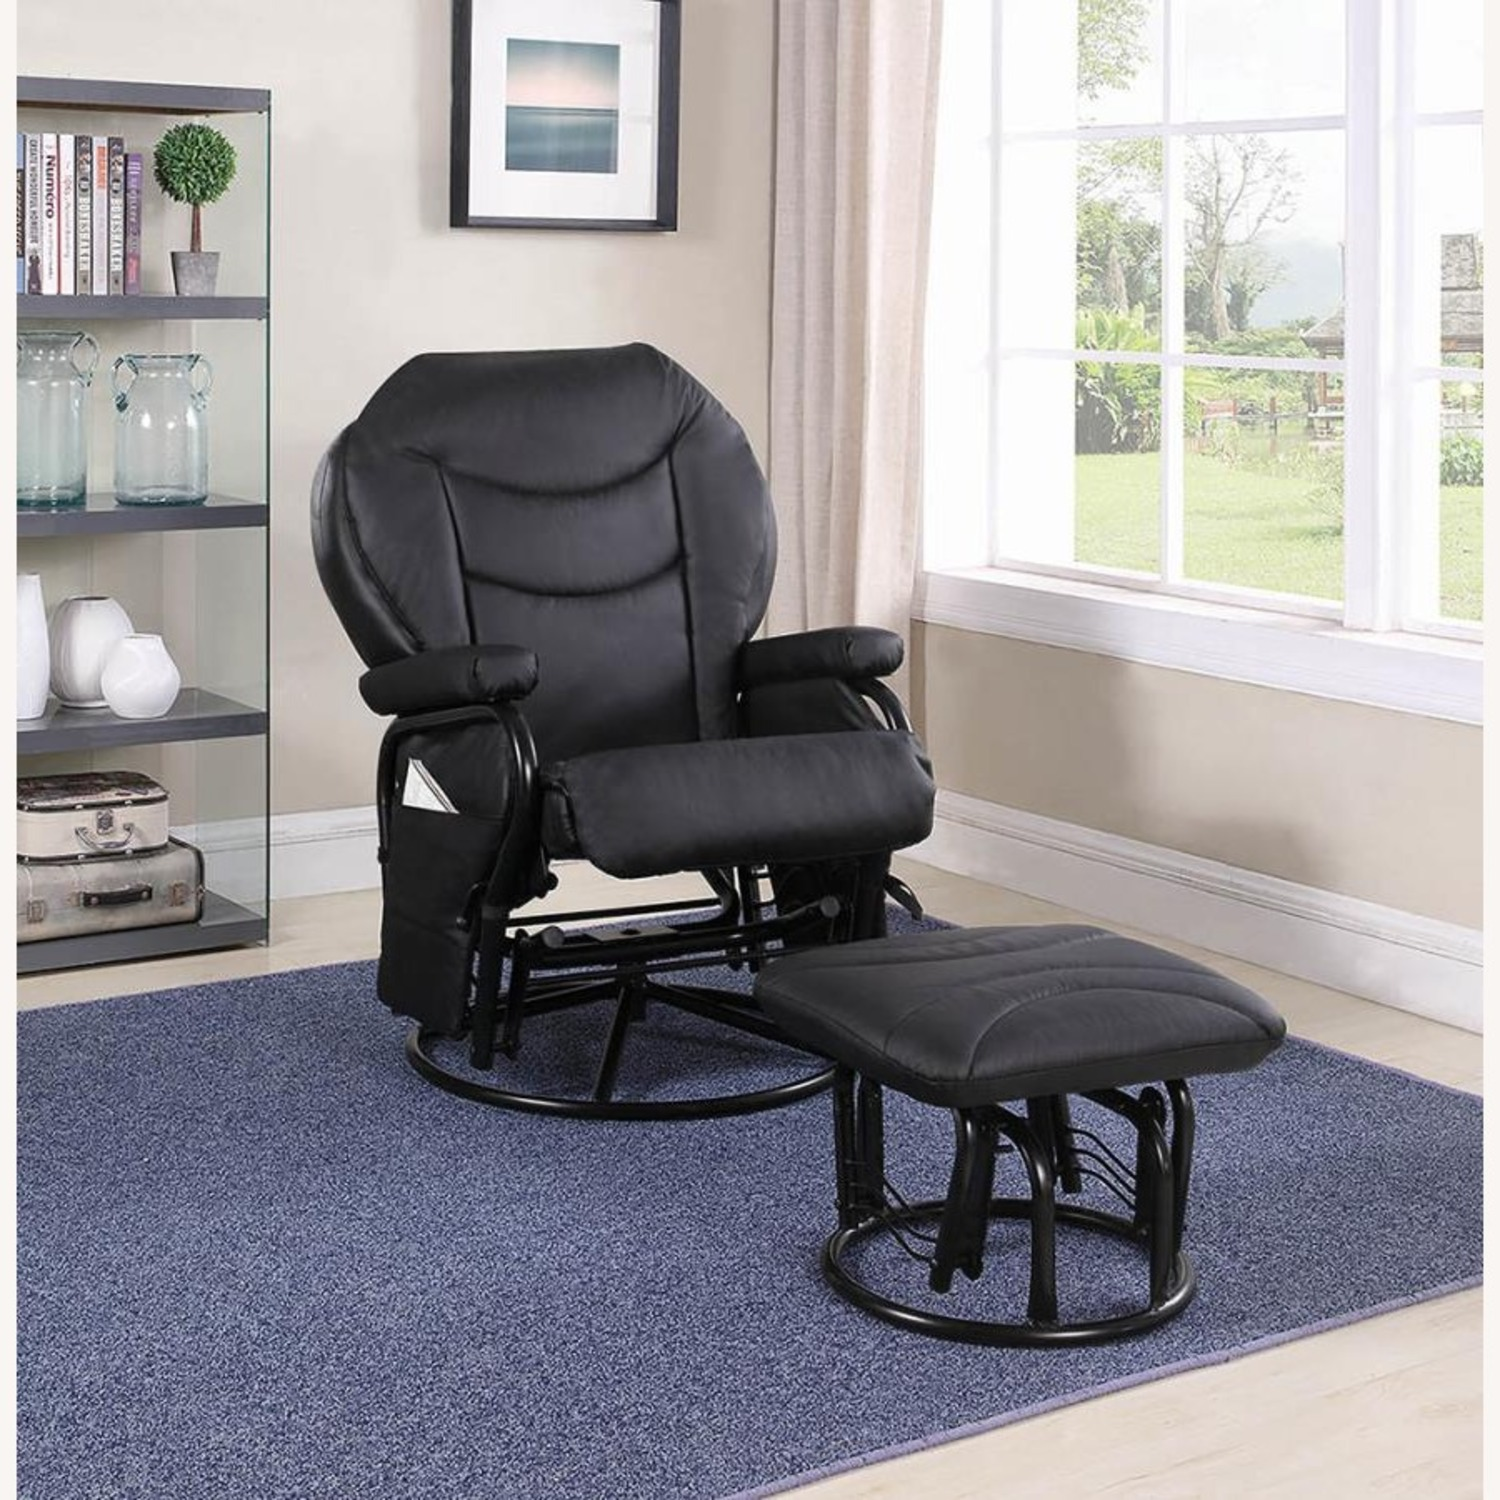 Glider W/ Ottoman In Black Leatherette Upholstery - image-5